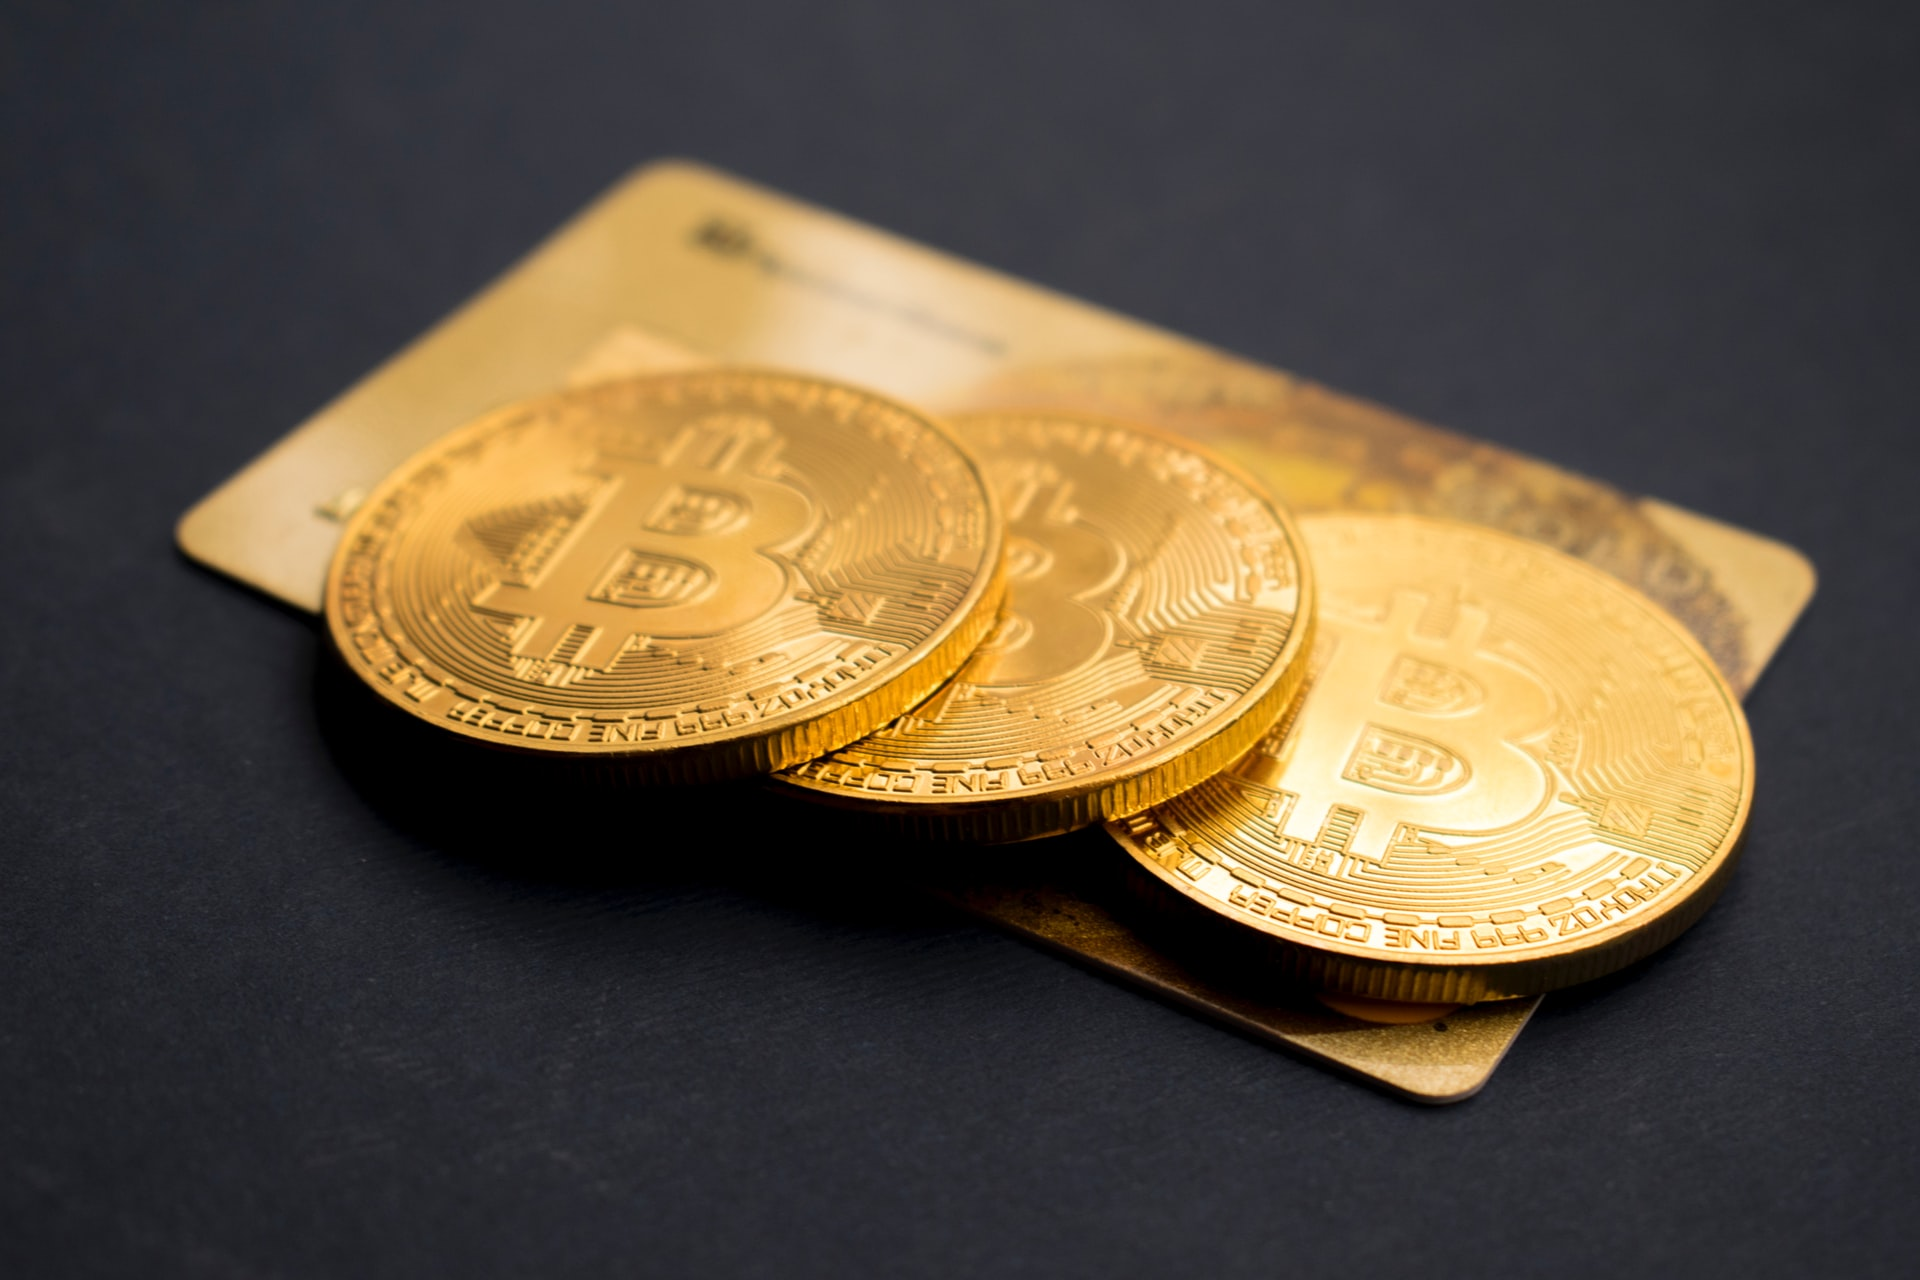 Bitcoin Breaks with Gold, but Hashrates Show a Resurgence Building